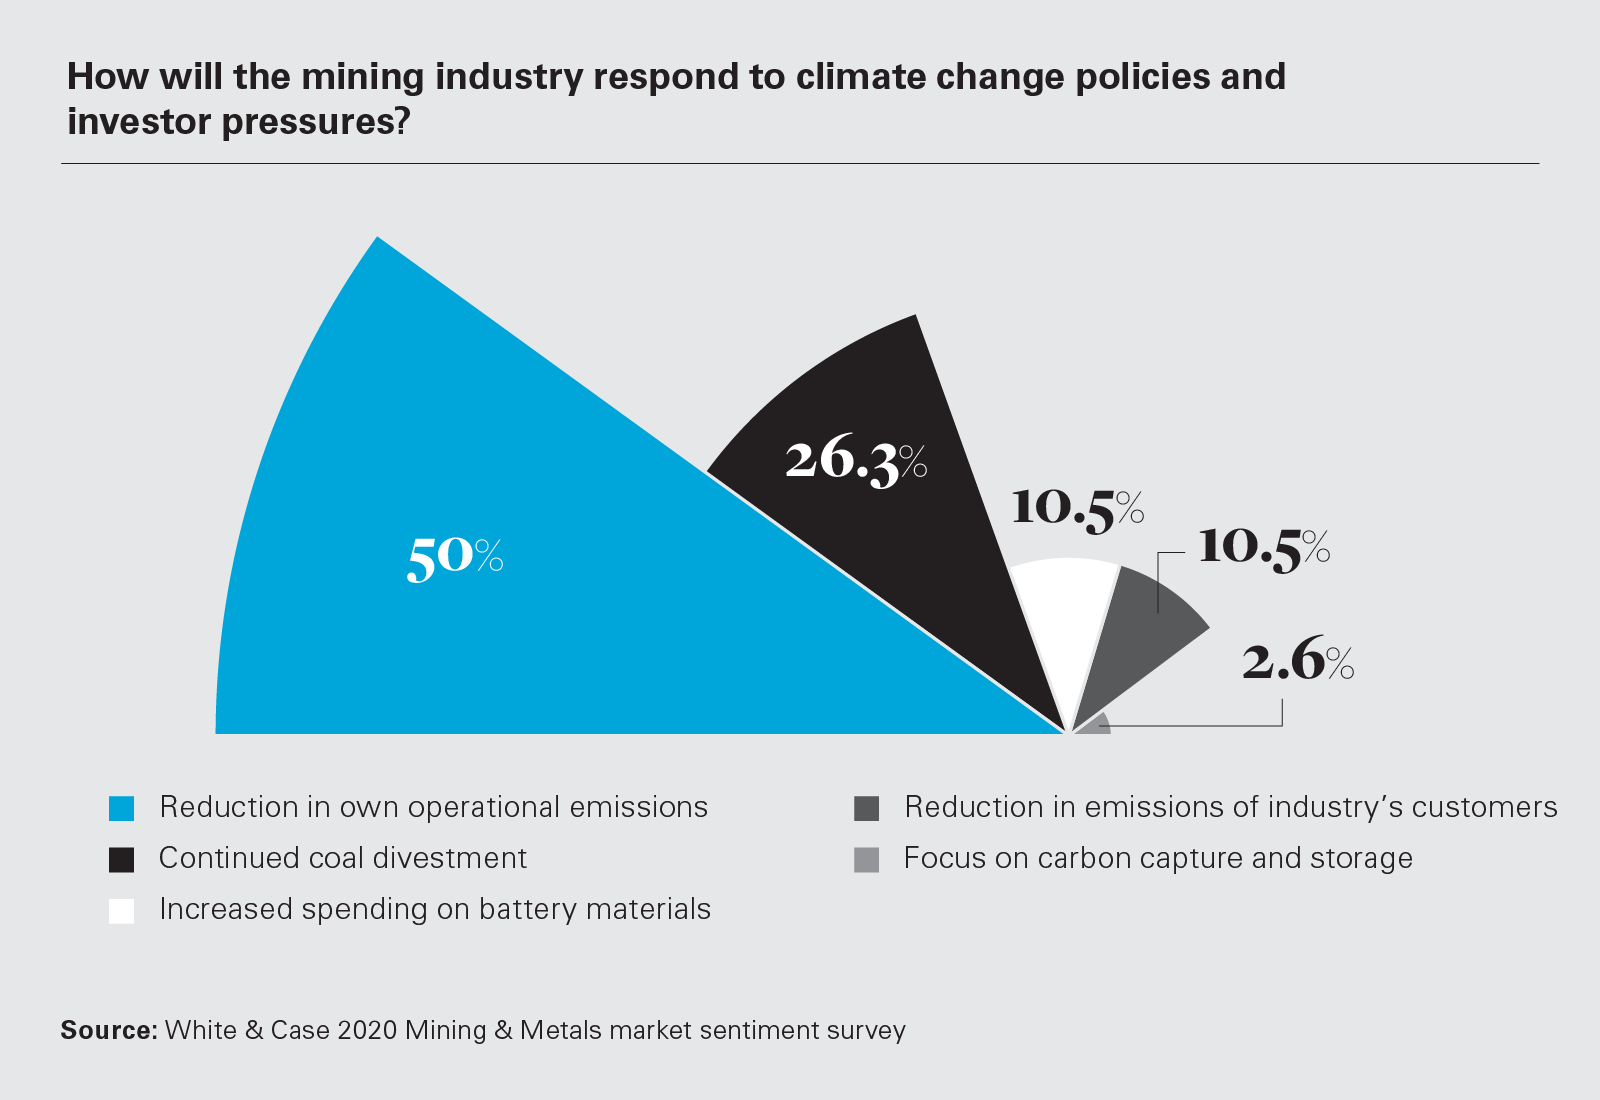 How will the mining industry respond to climate change policies and investor pressures? (Graph)